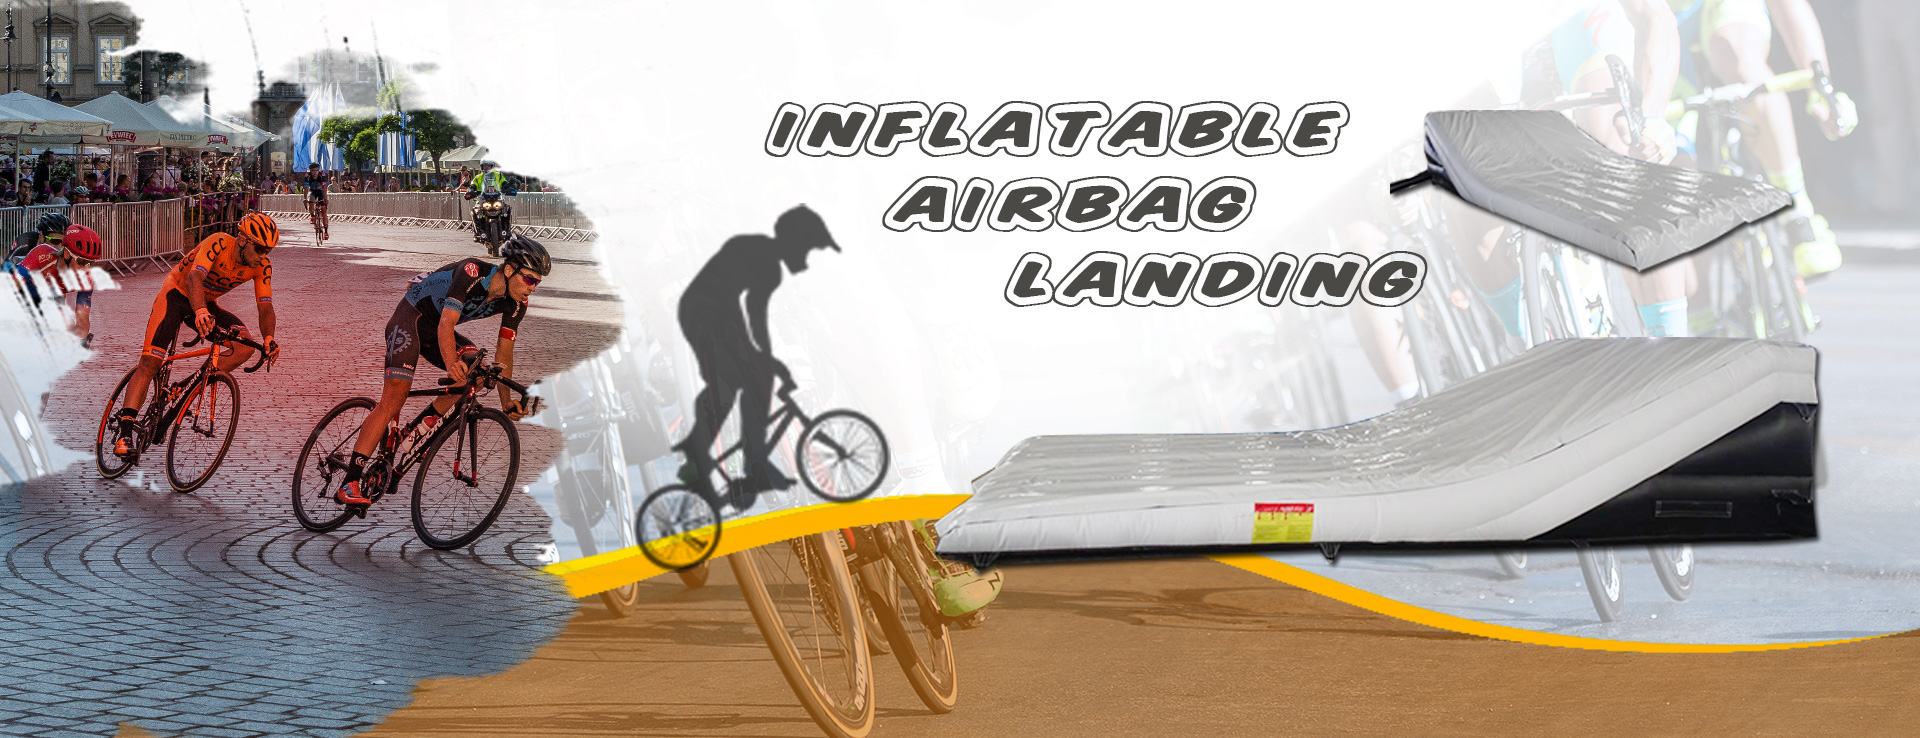 Inflatable Airbag Landing